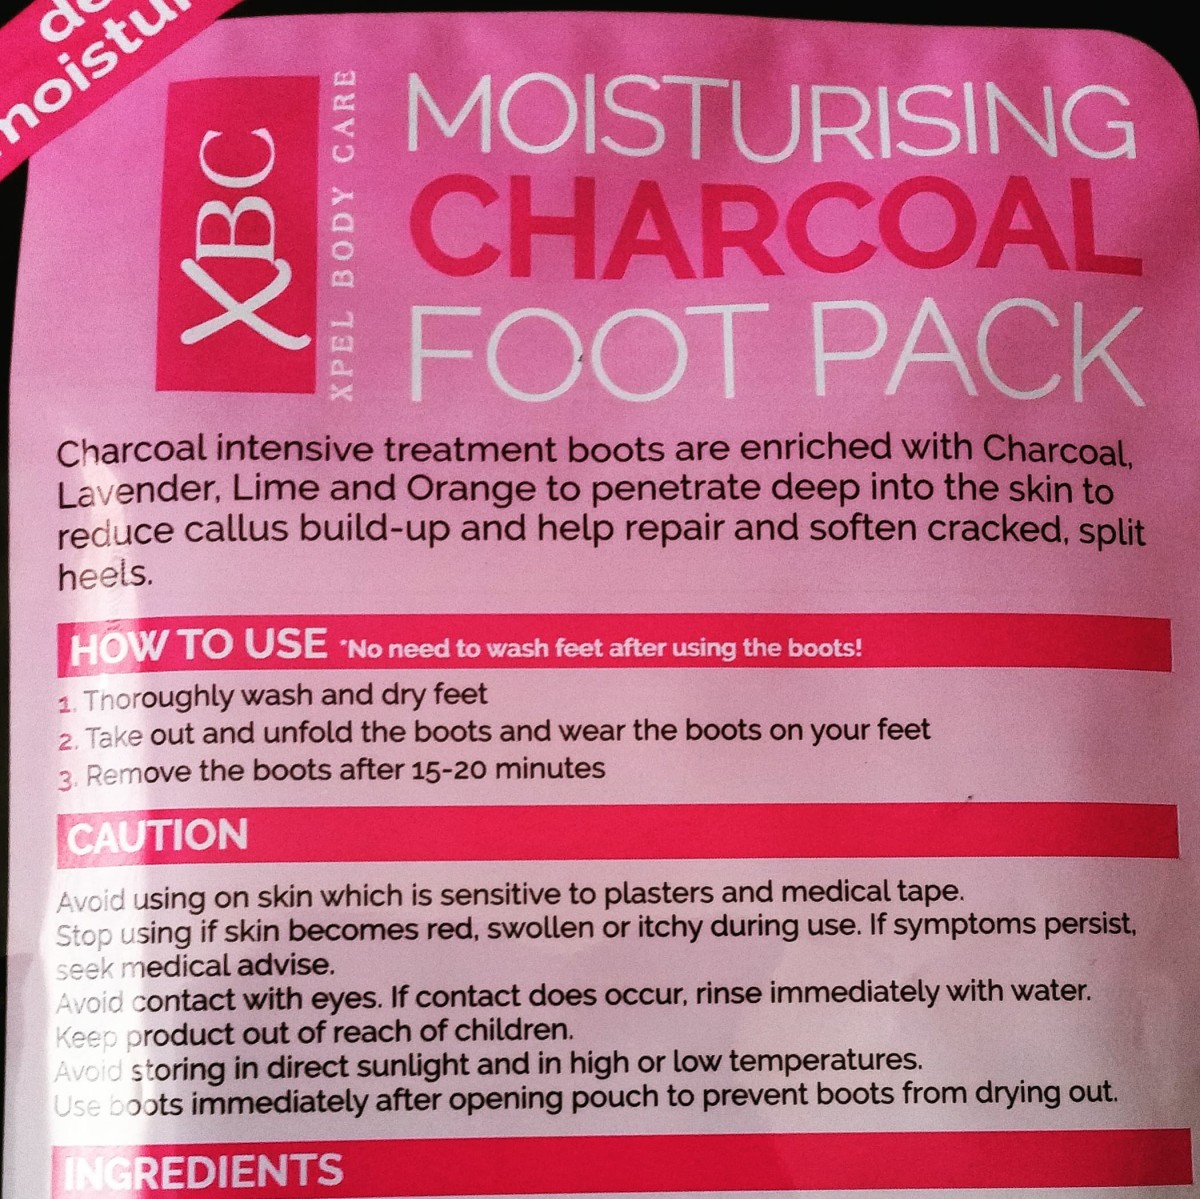 The instructions, showing how to use the Xpel Body care: XBC Moisturising Charcoal Foot Pack.